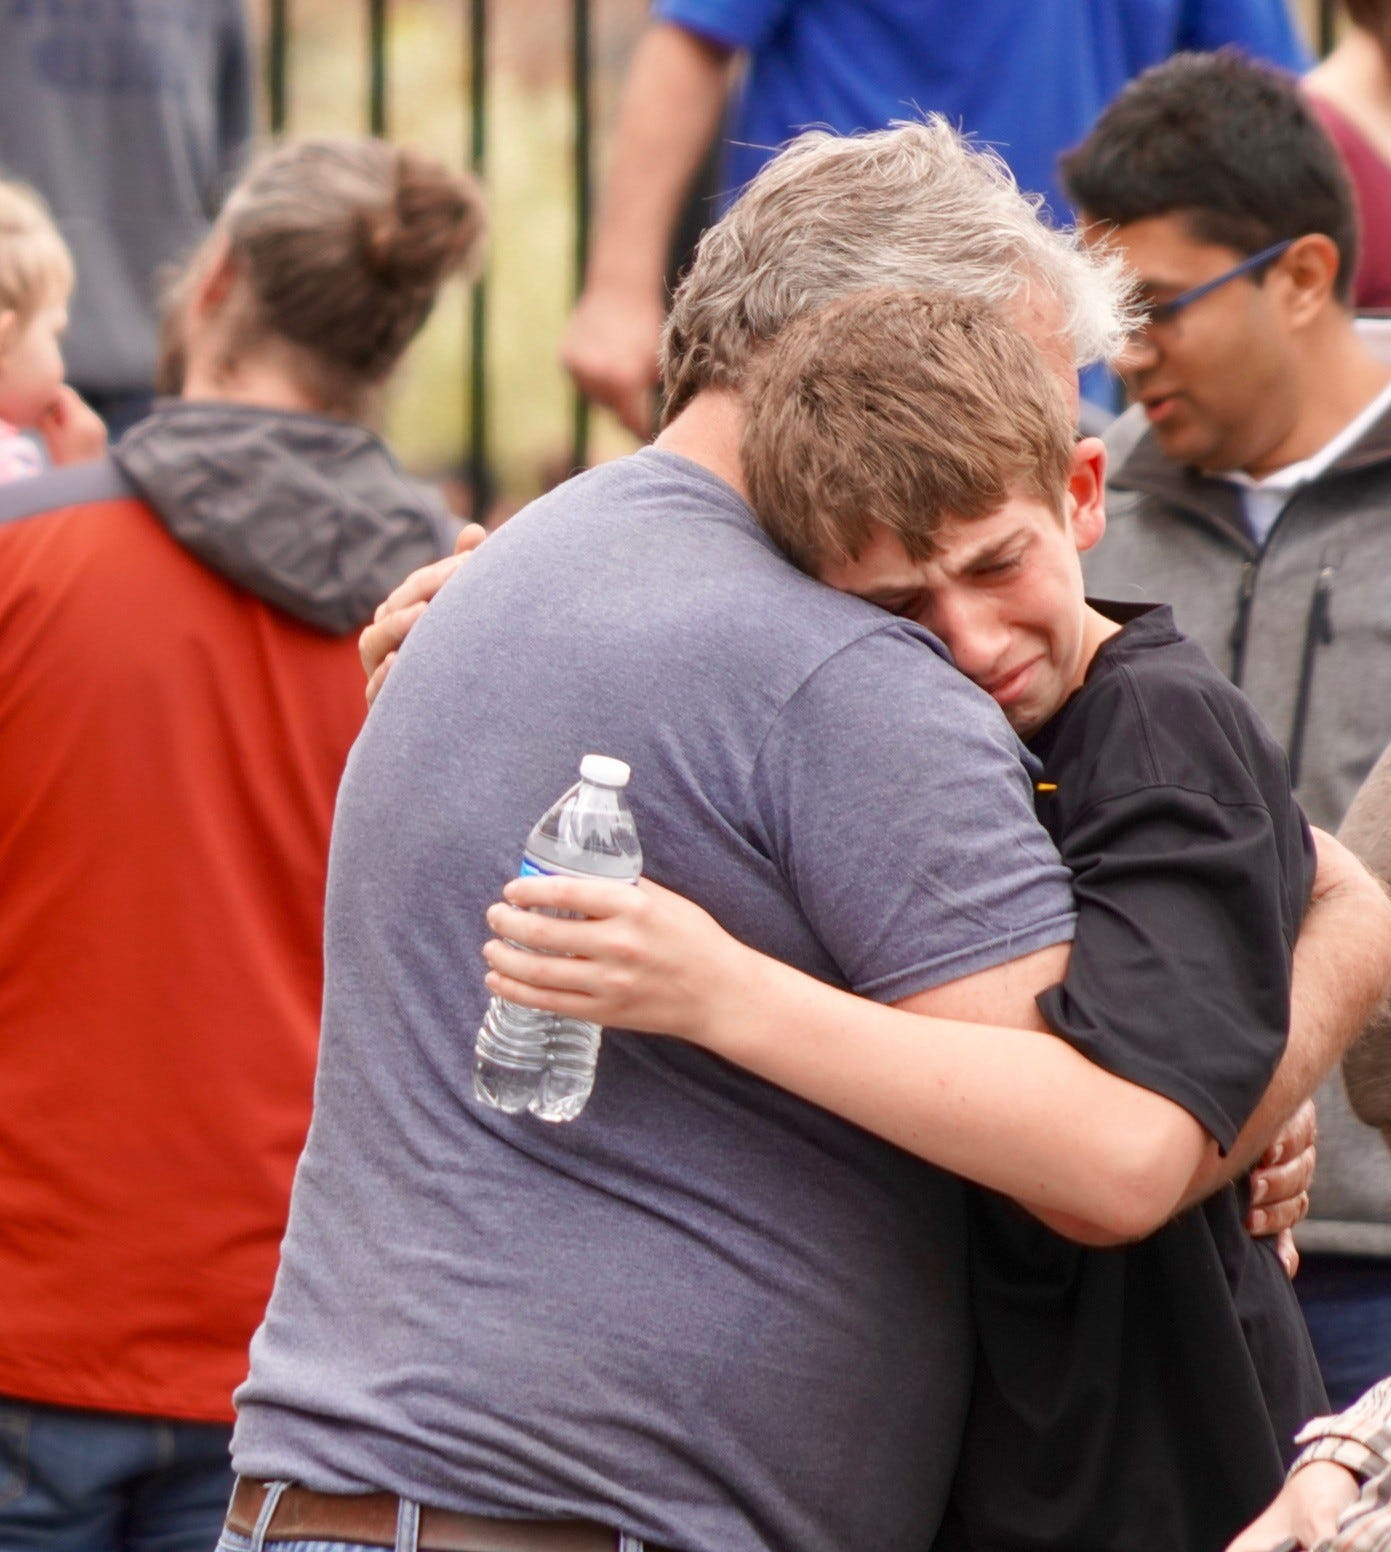 Suspect ID'd In Colorado School Shooting That Leaves 1